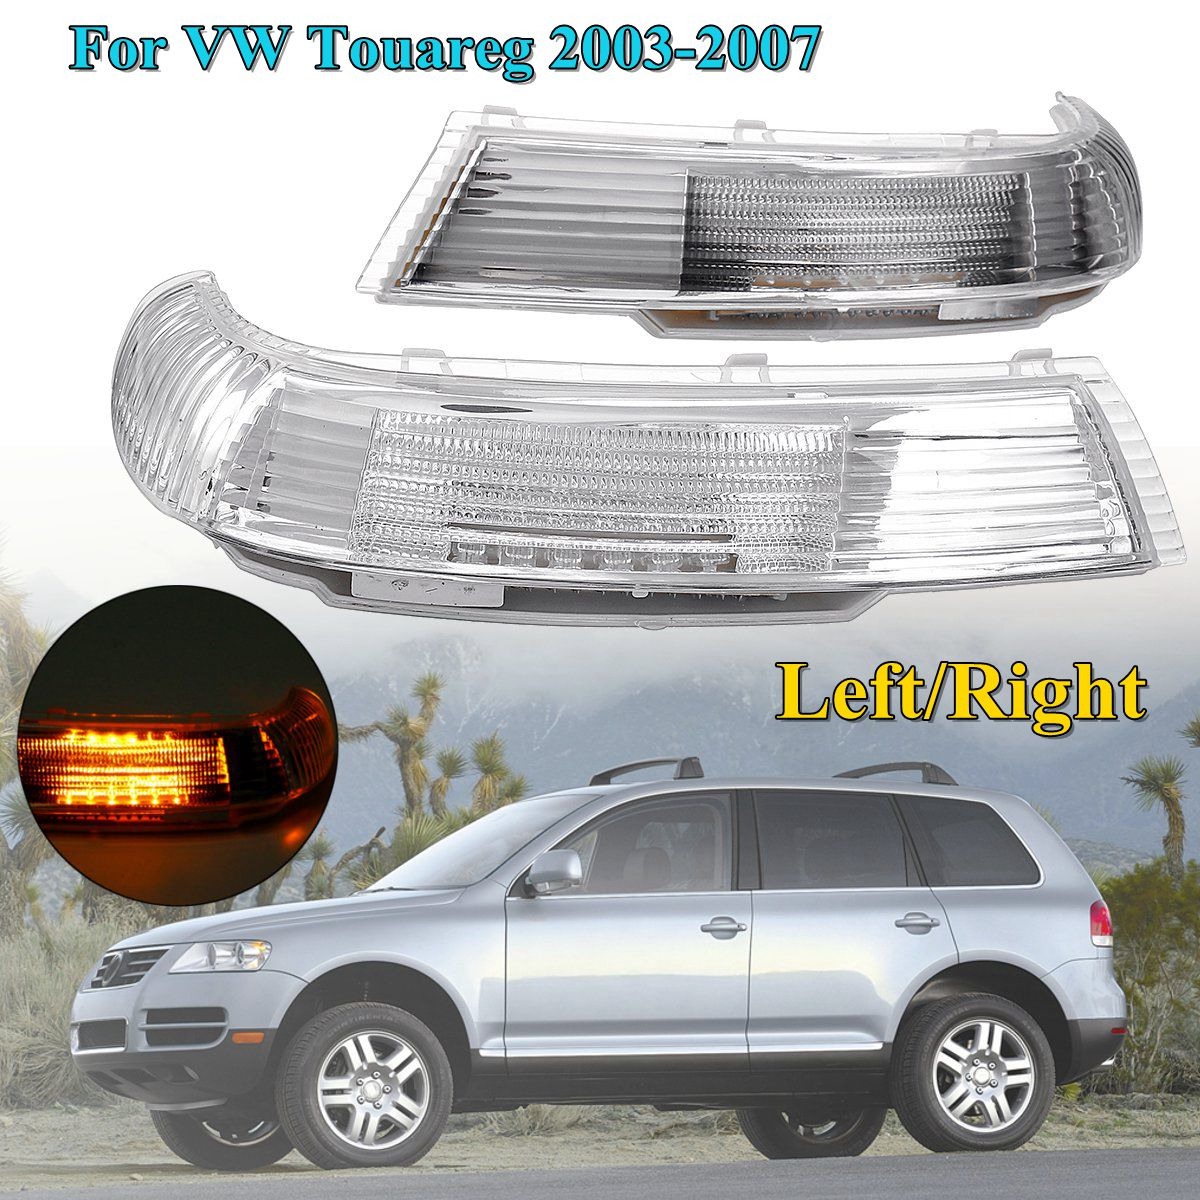 Side Rearview Mirror LED Turn Signal Lights Indicator Lamp Amber Left/Right for VW Touareg 2003-2007